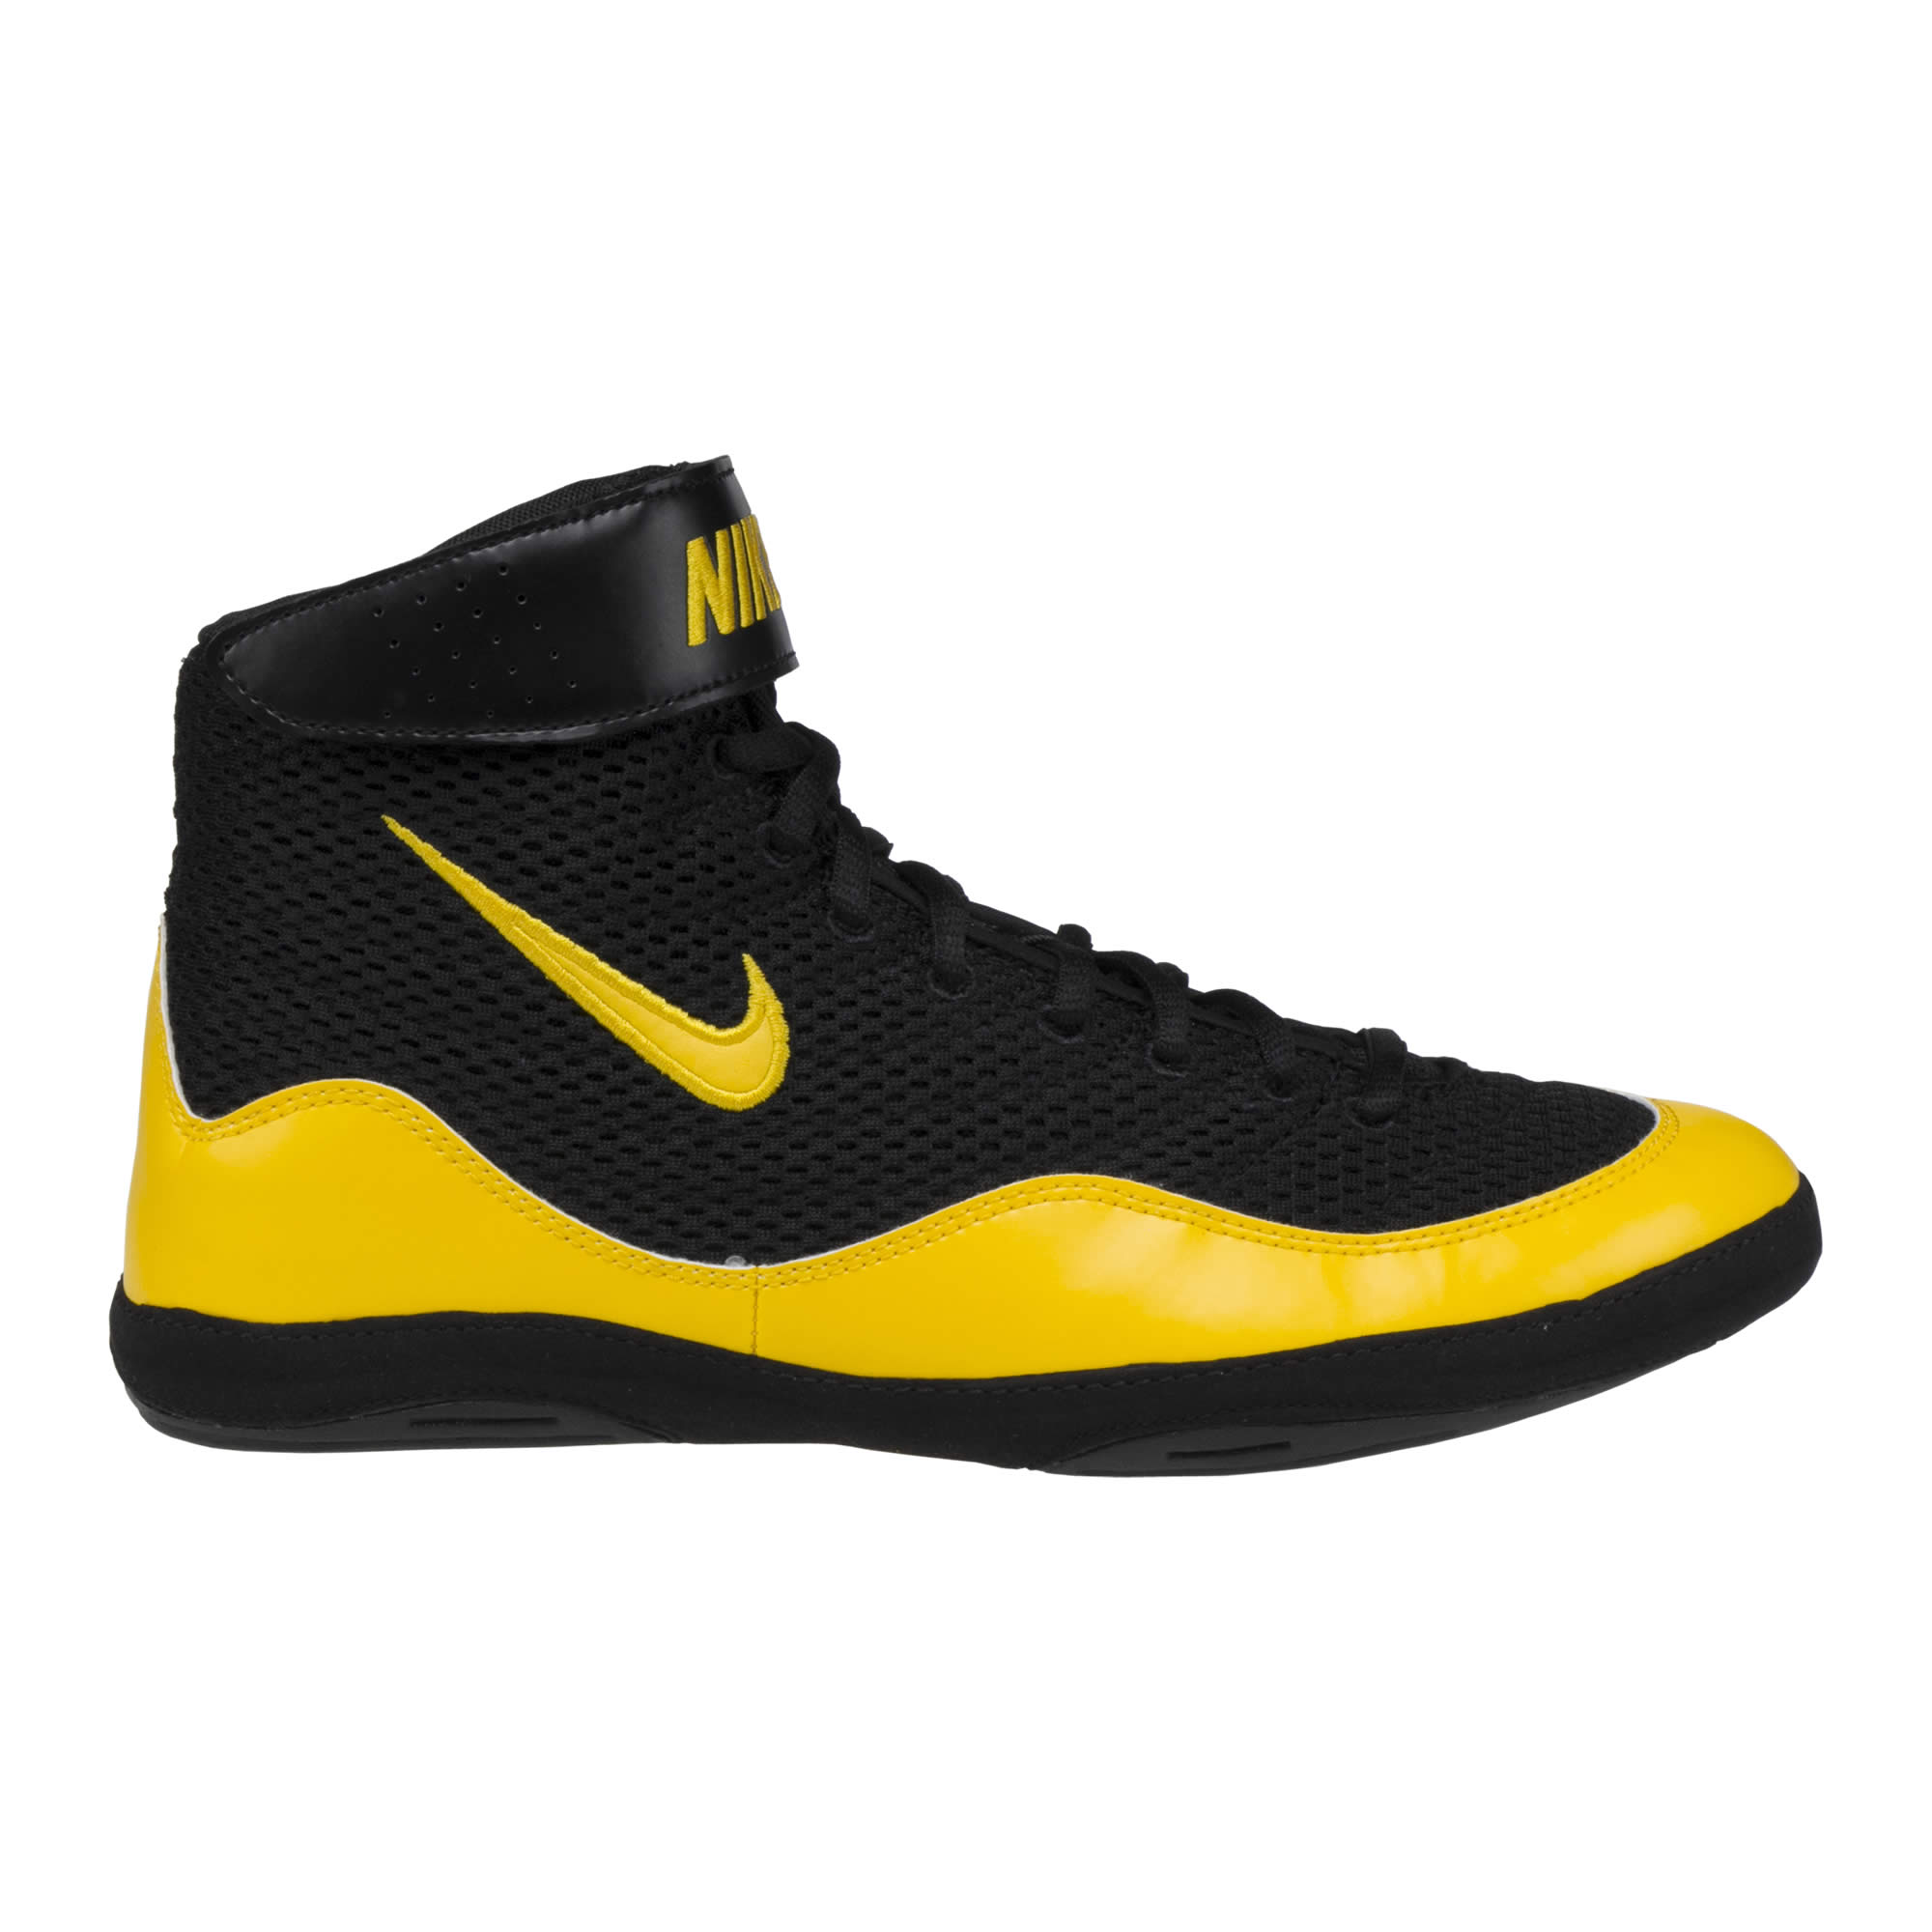 b2ce0e5670ef64 Nike Inflict 3 Shoes